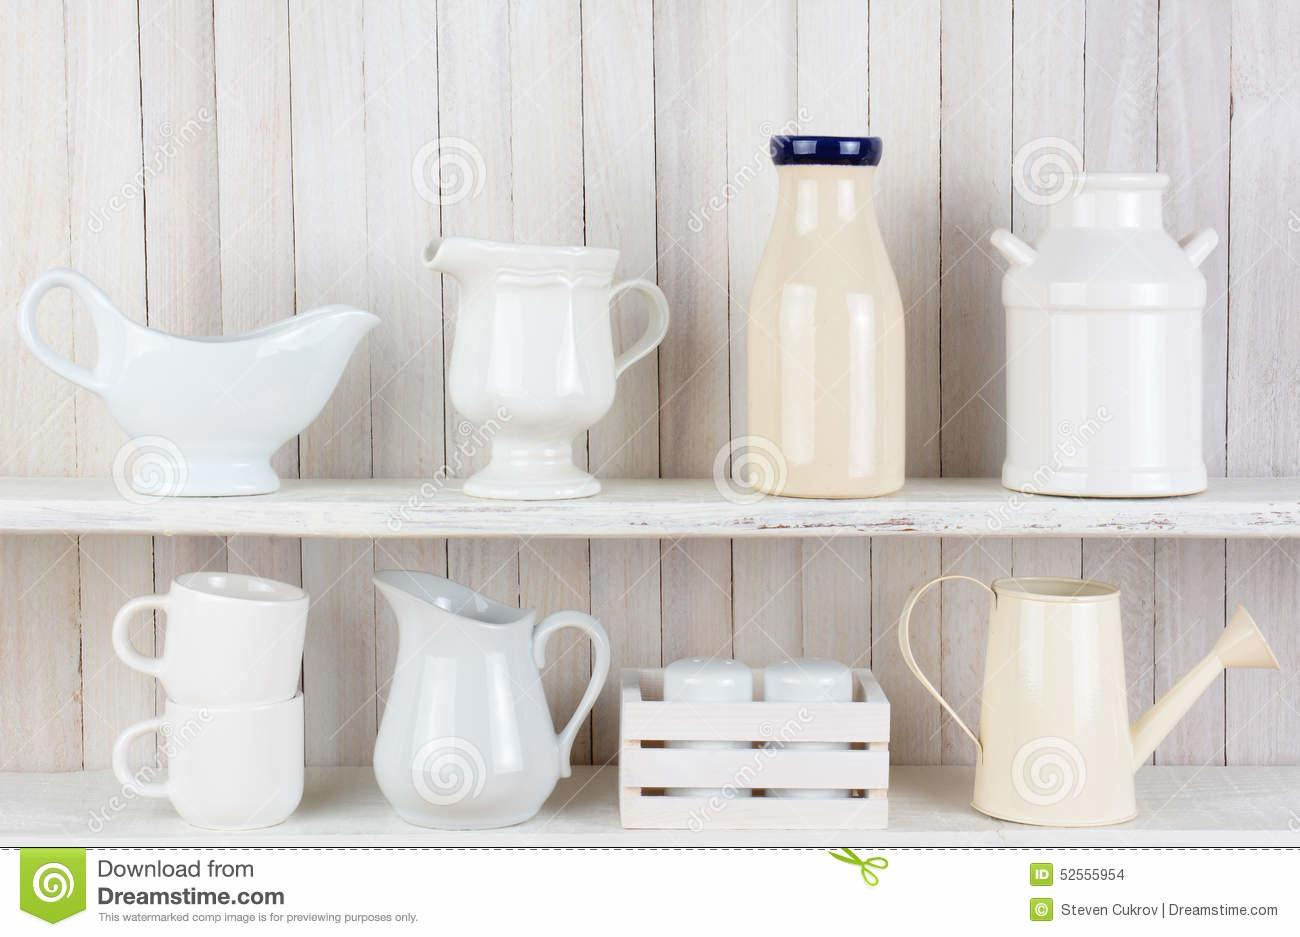 Rustic White Kitchen Shelves Stock